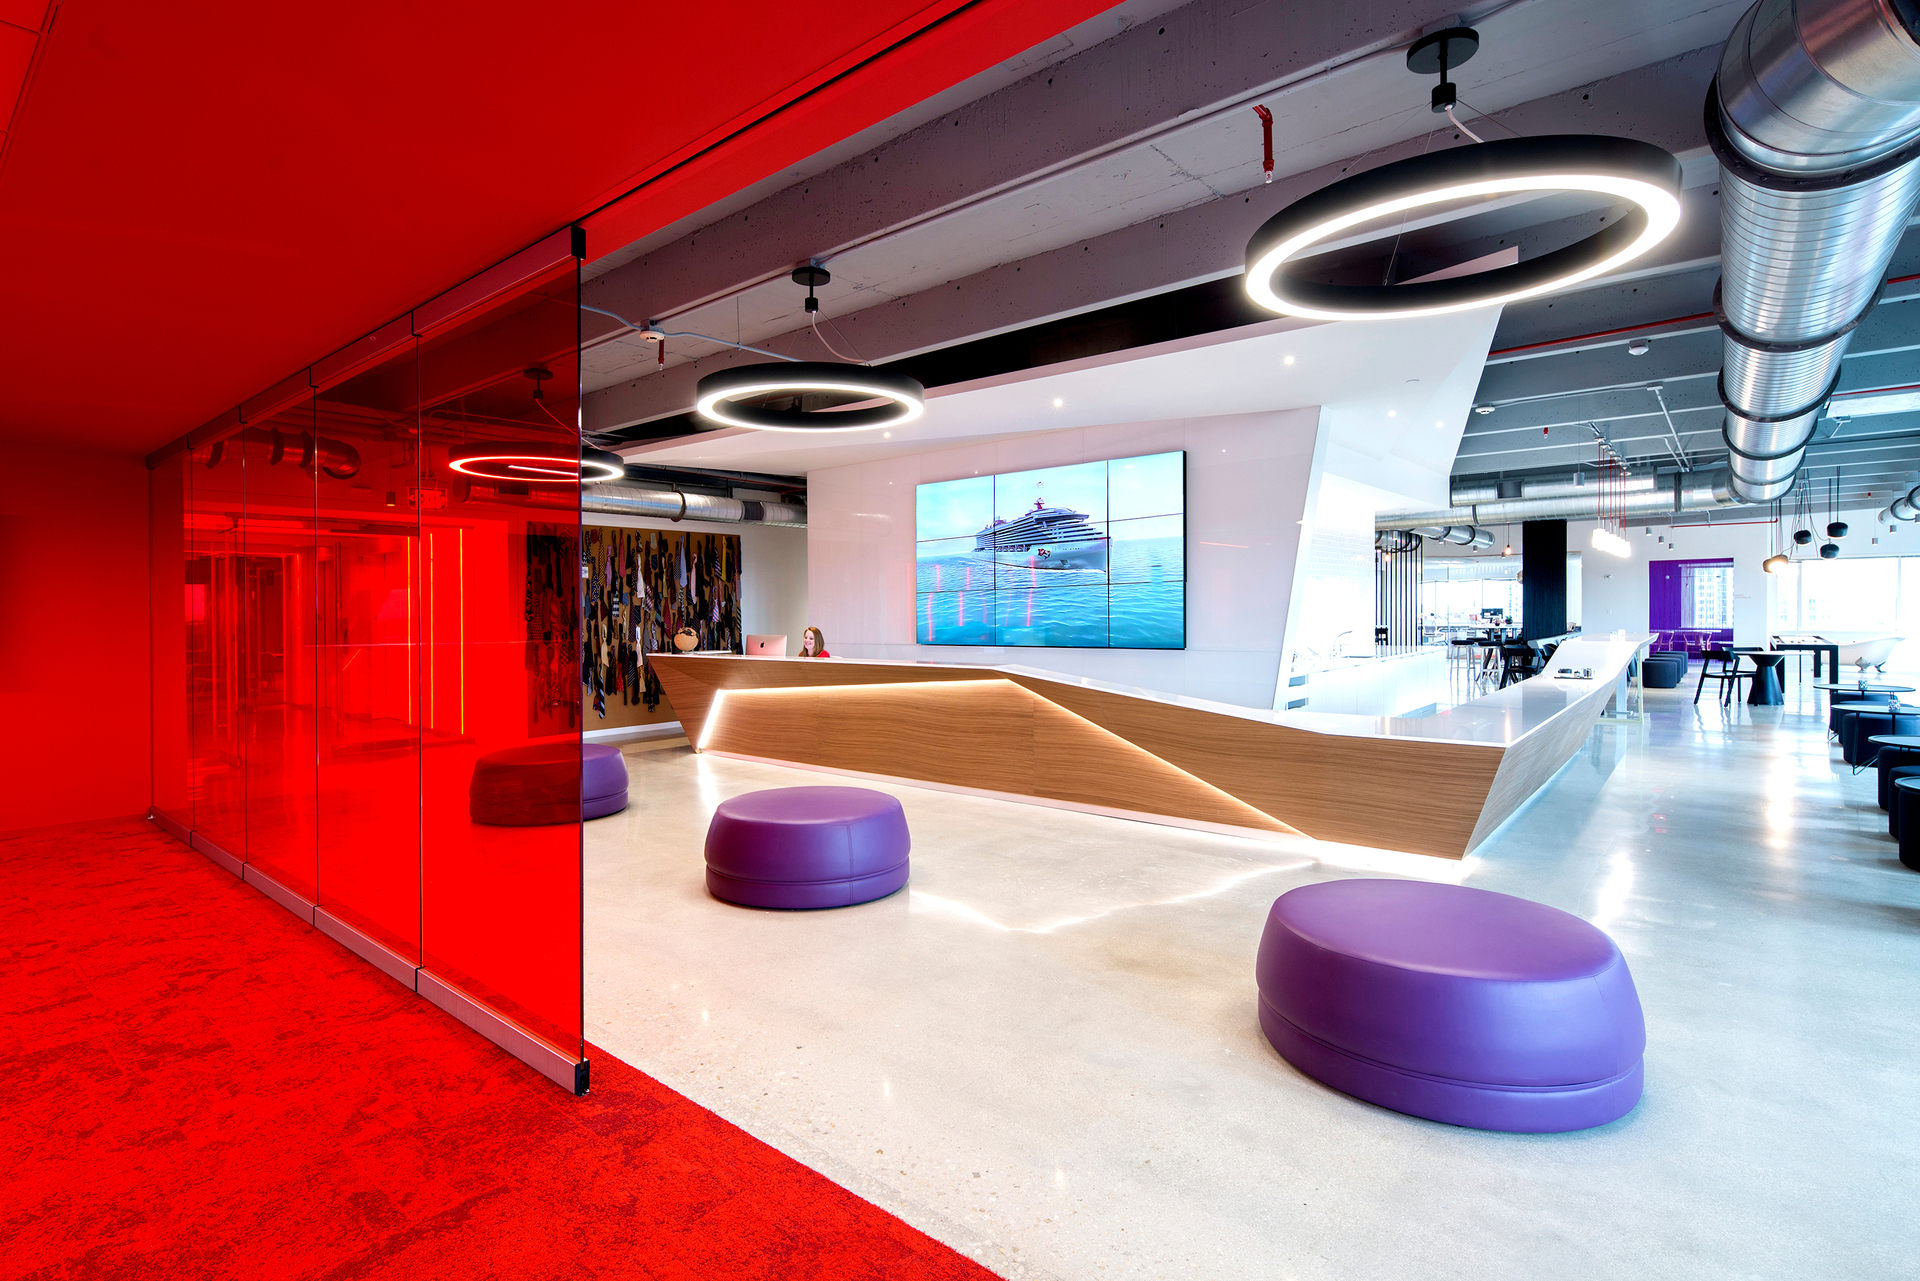 An open office space design with a modular glass wall that separates the open meeting areas with the conference room. The Solo™ Pendant by OCL was used to illuminate the reception area.